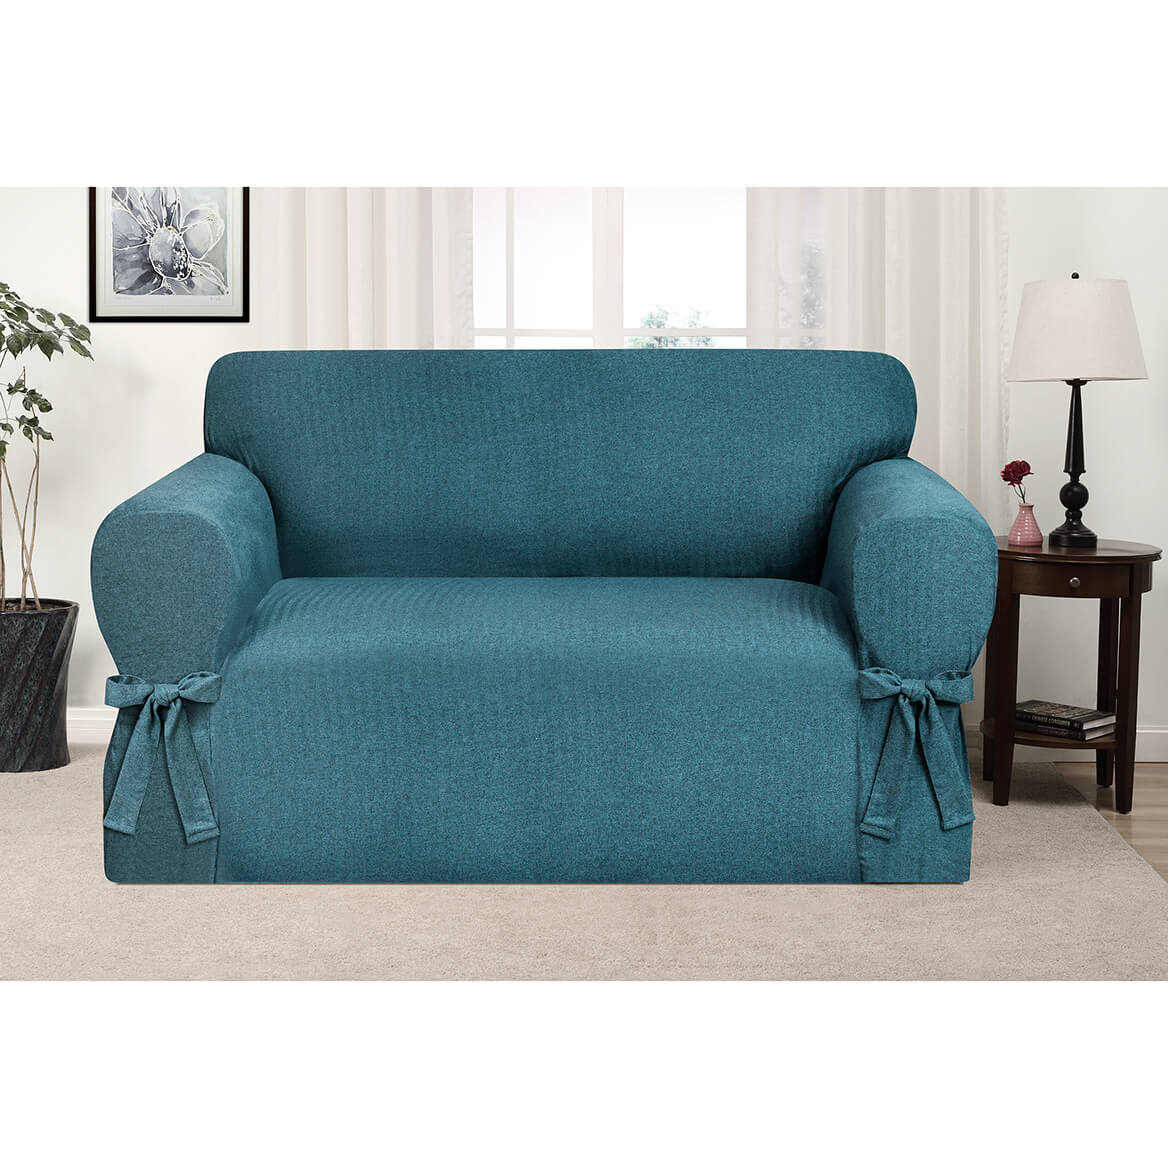 Kathy Ireland Evening Flannel Loveseat Slipcover-364171